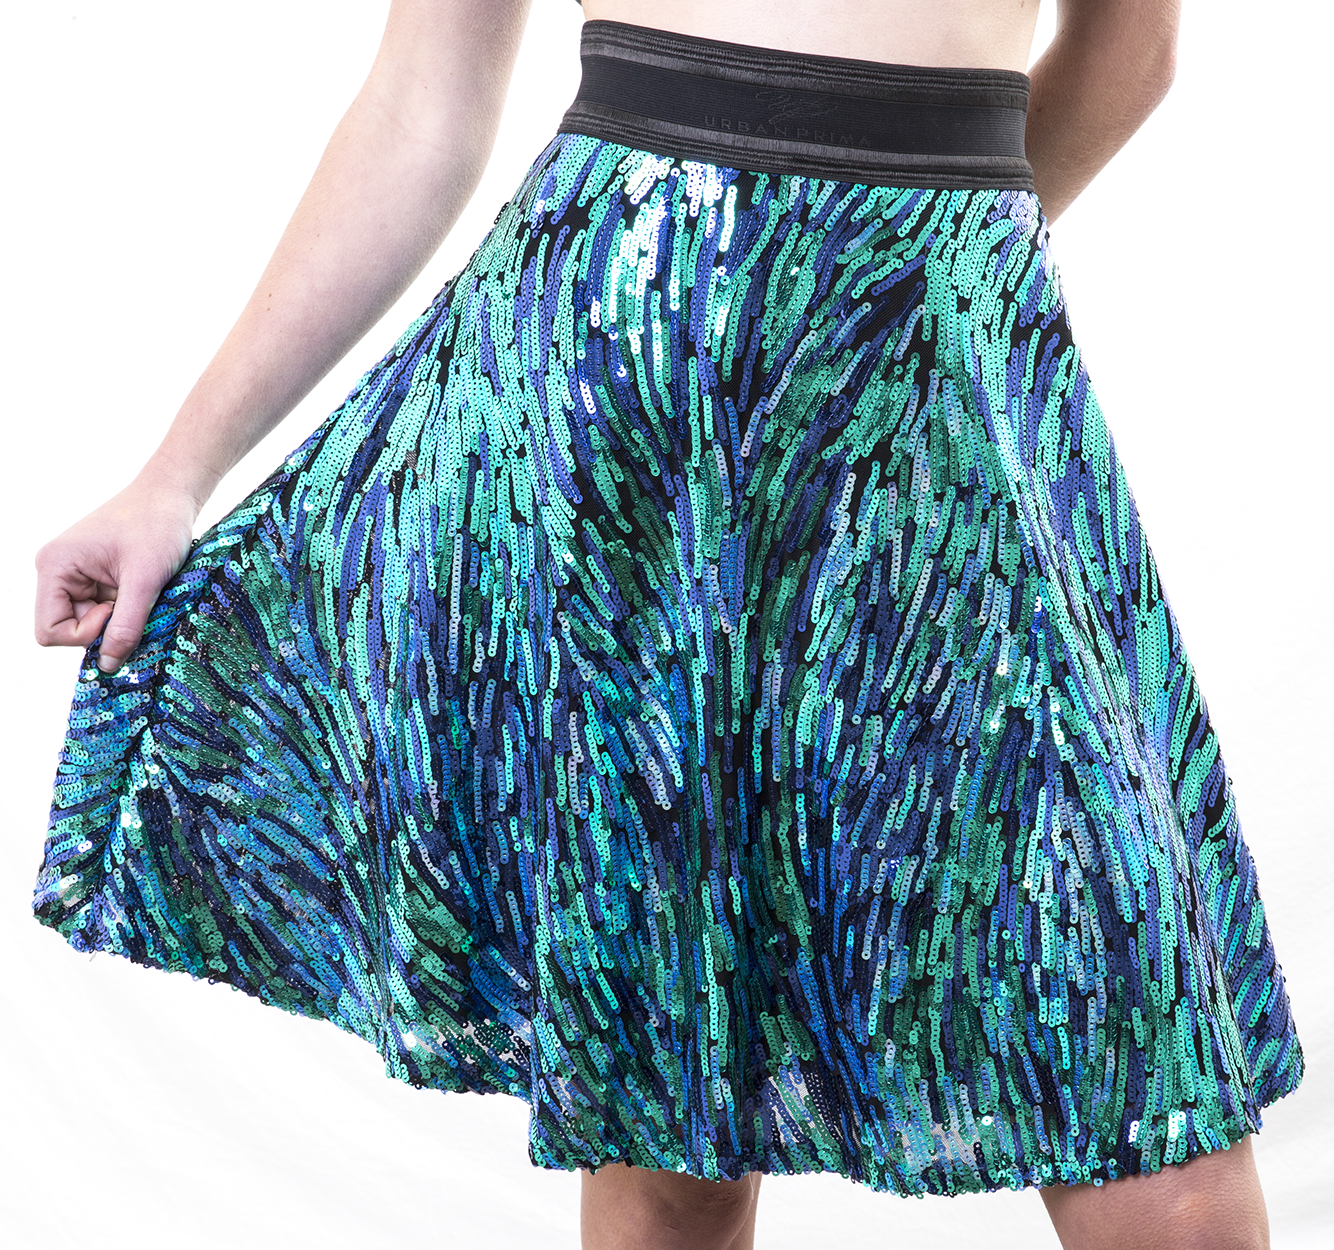 MERMAID SWIRLS COCKTAIL SKIRT